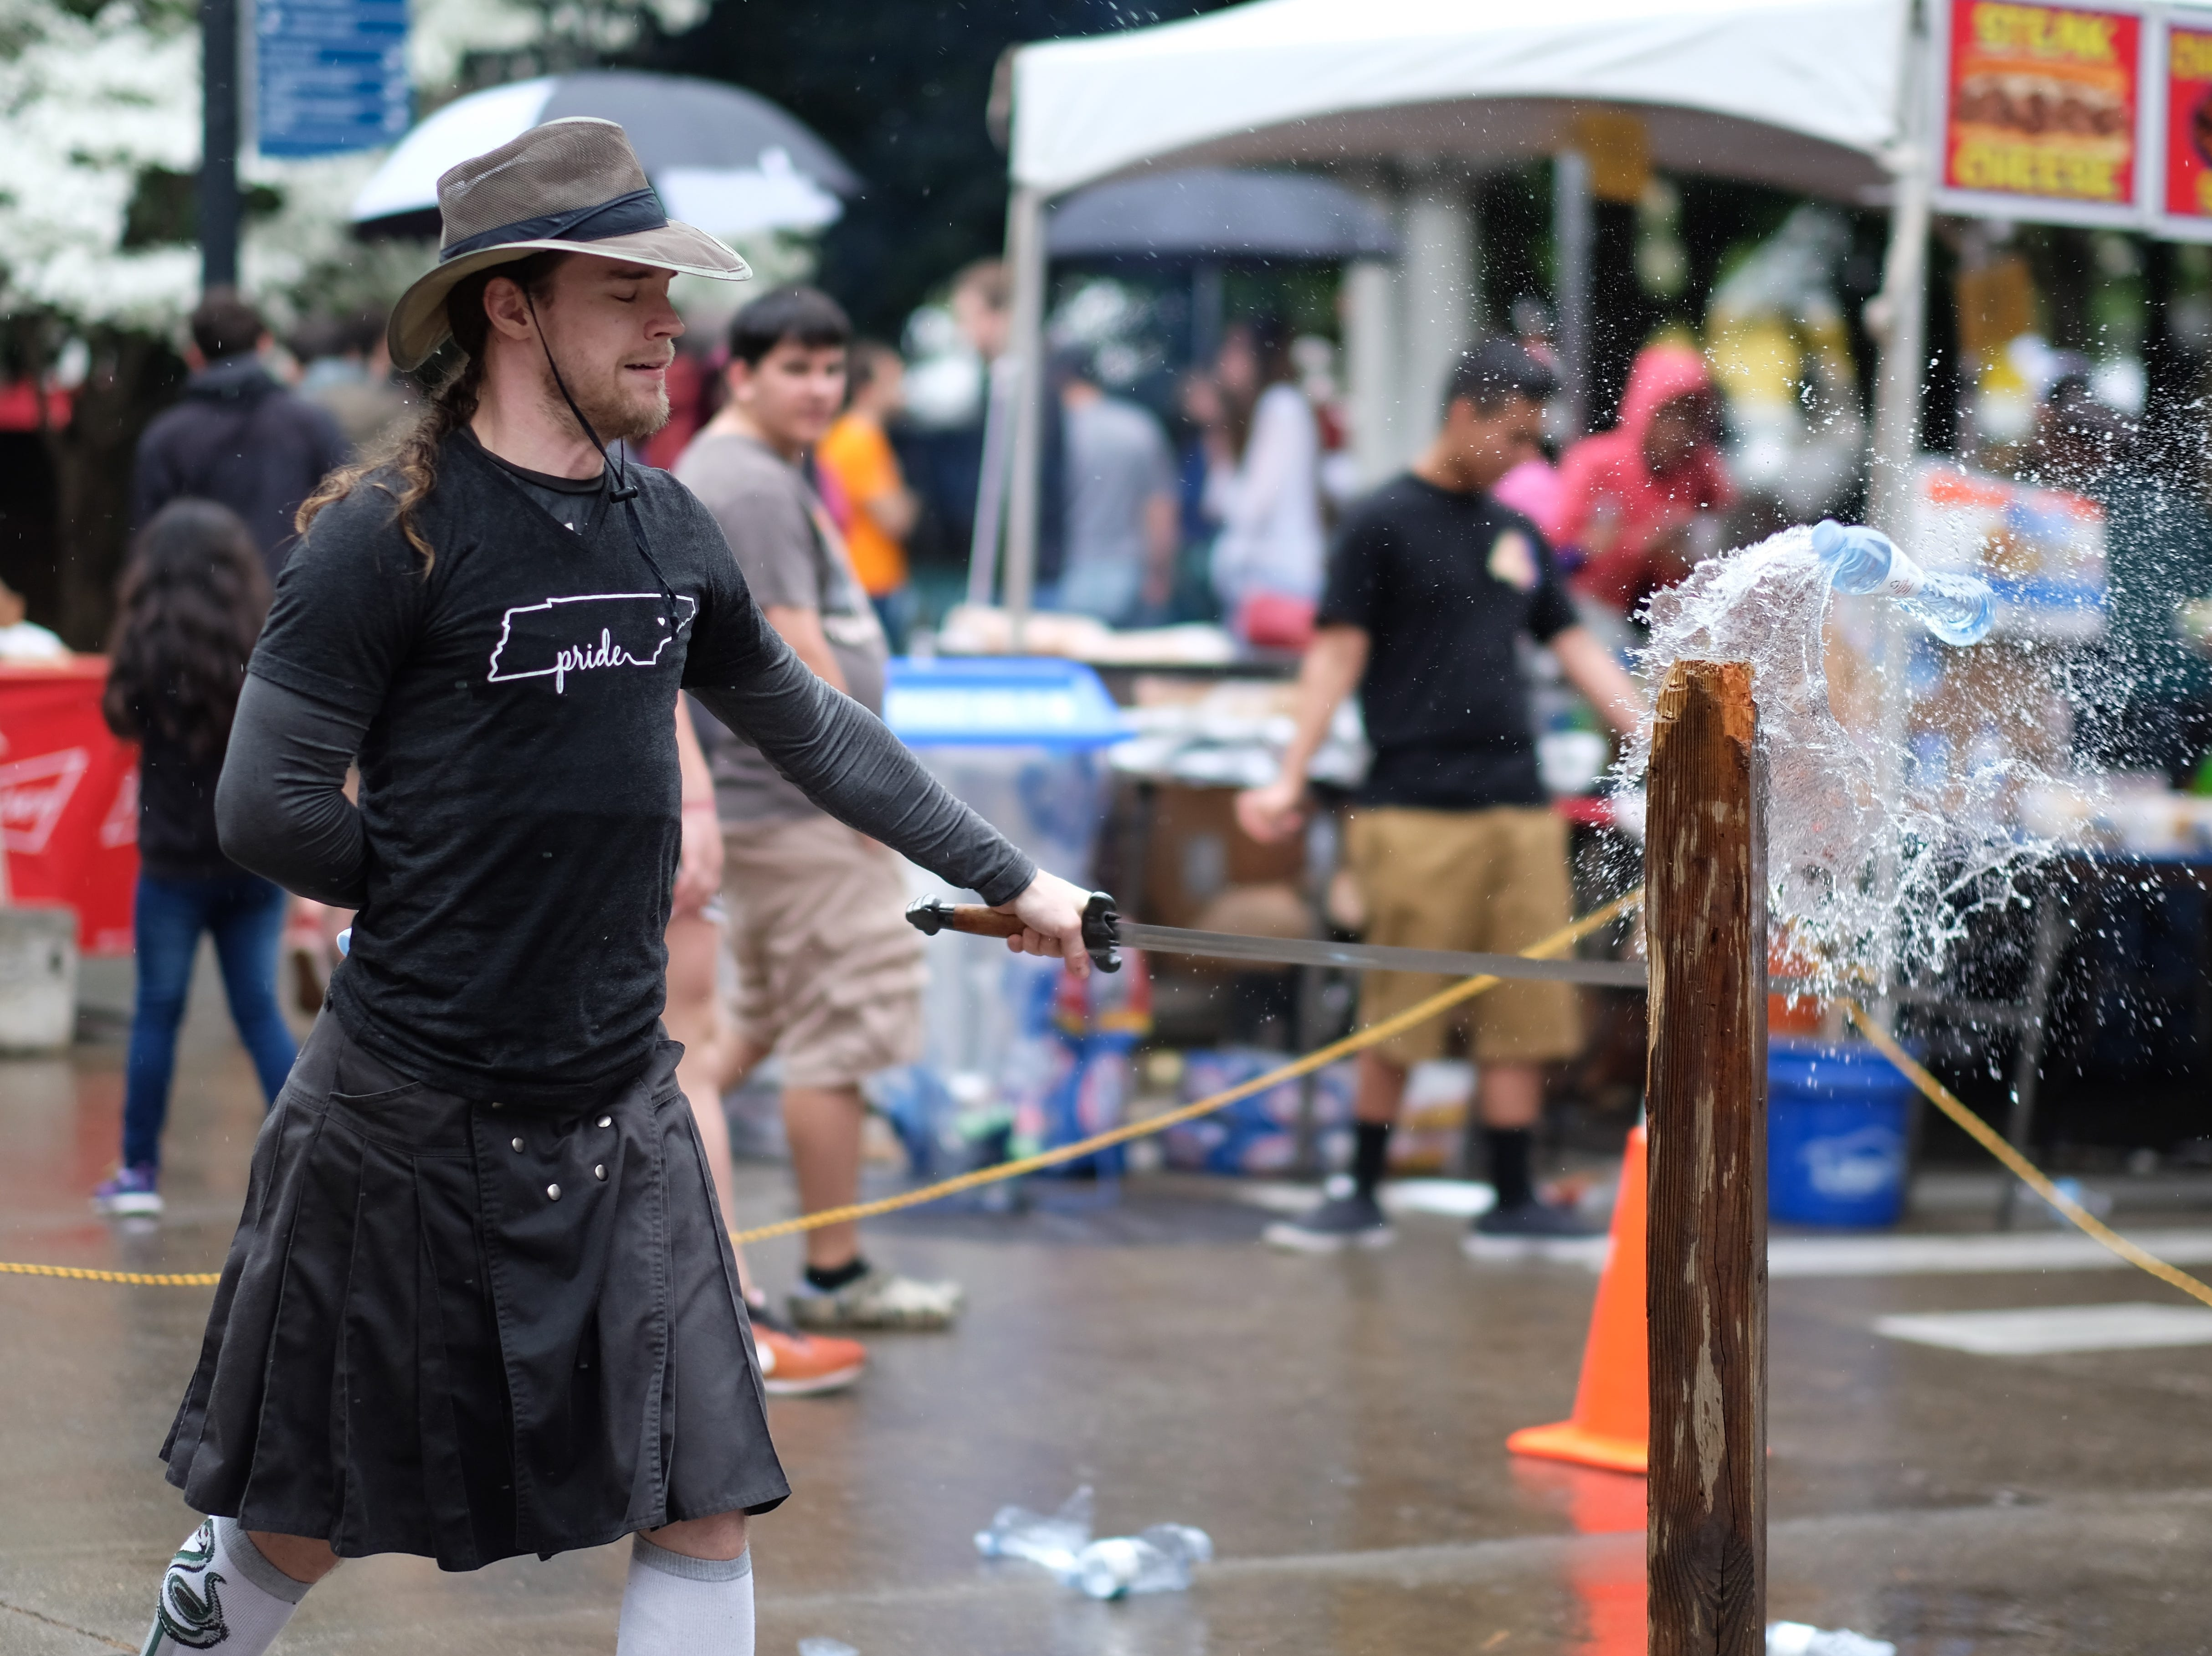 Tom Farmer of Knoxville Academy of the Blade slices a water bottle in half during the Rossini Festival in Knoxville on Saturday, April 13, 2019. (Shawn Millsaps/Special to News Sentinel)